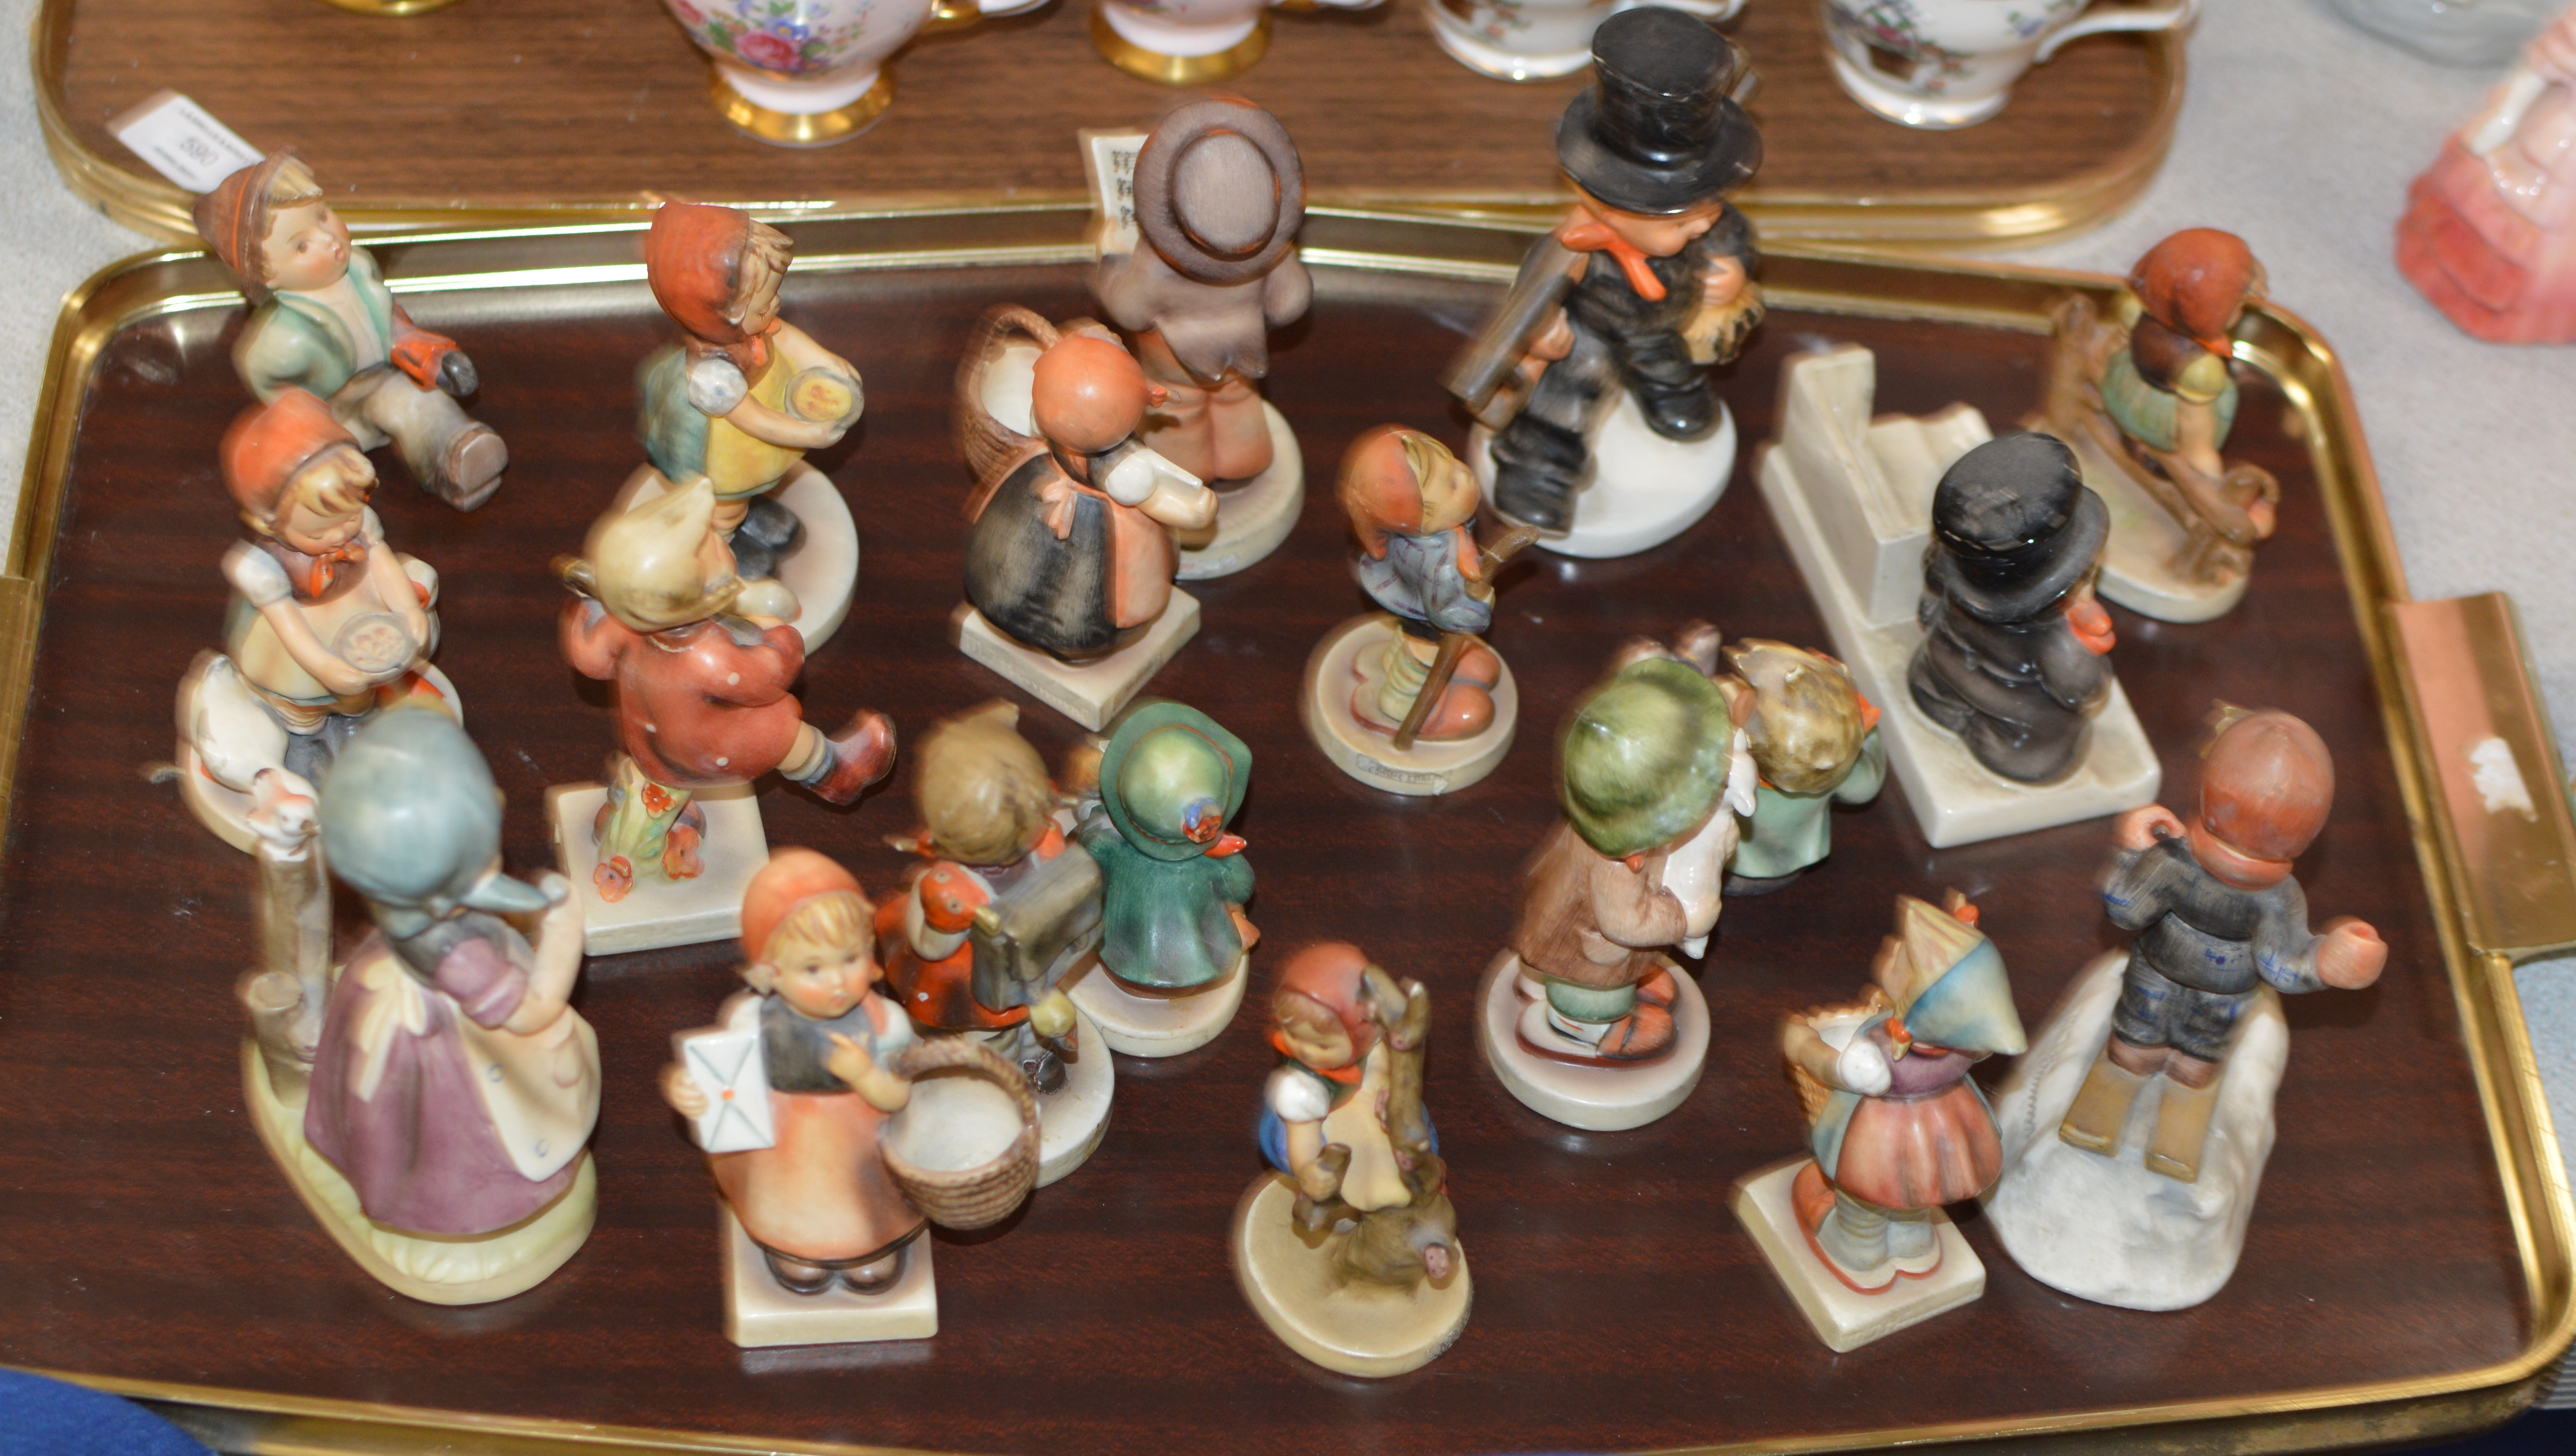 Lot 591 - TRAY CONTAINING VARIOUS HUMMEL FIGURINE ORNAMENTS